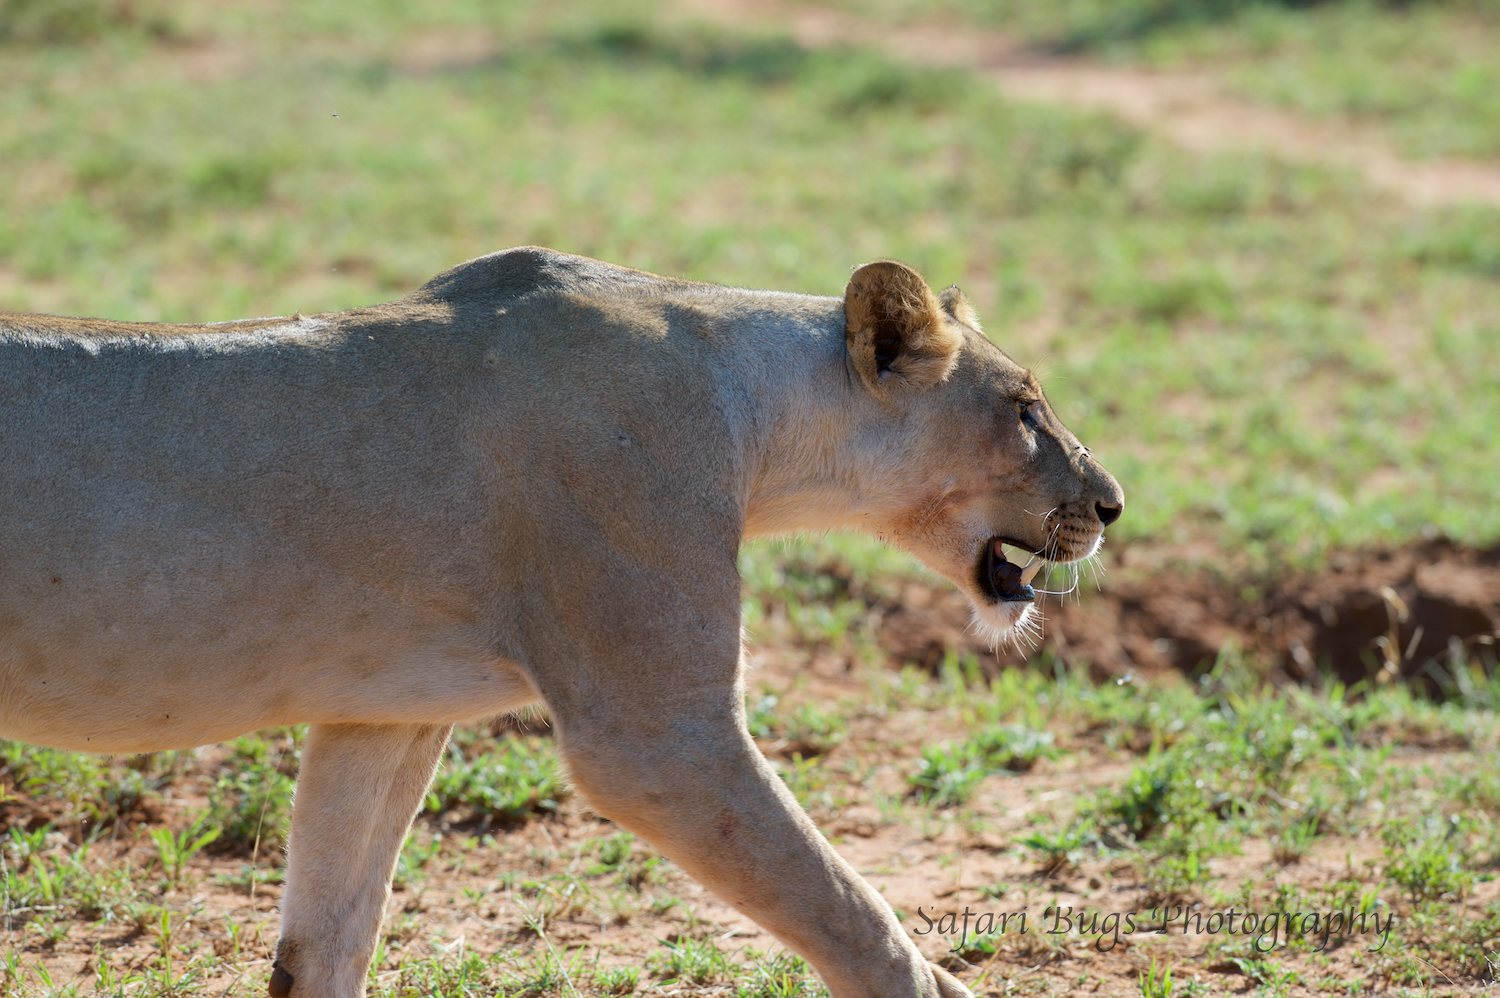 But the Jackal became distracted (or pretended to be) by some birds and ran off. And, the second lioness followed as did the one having breakfast.